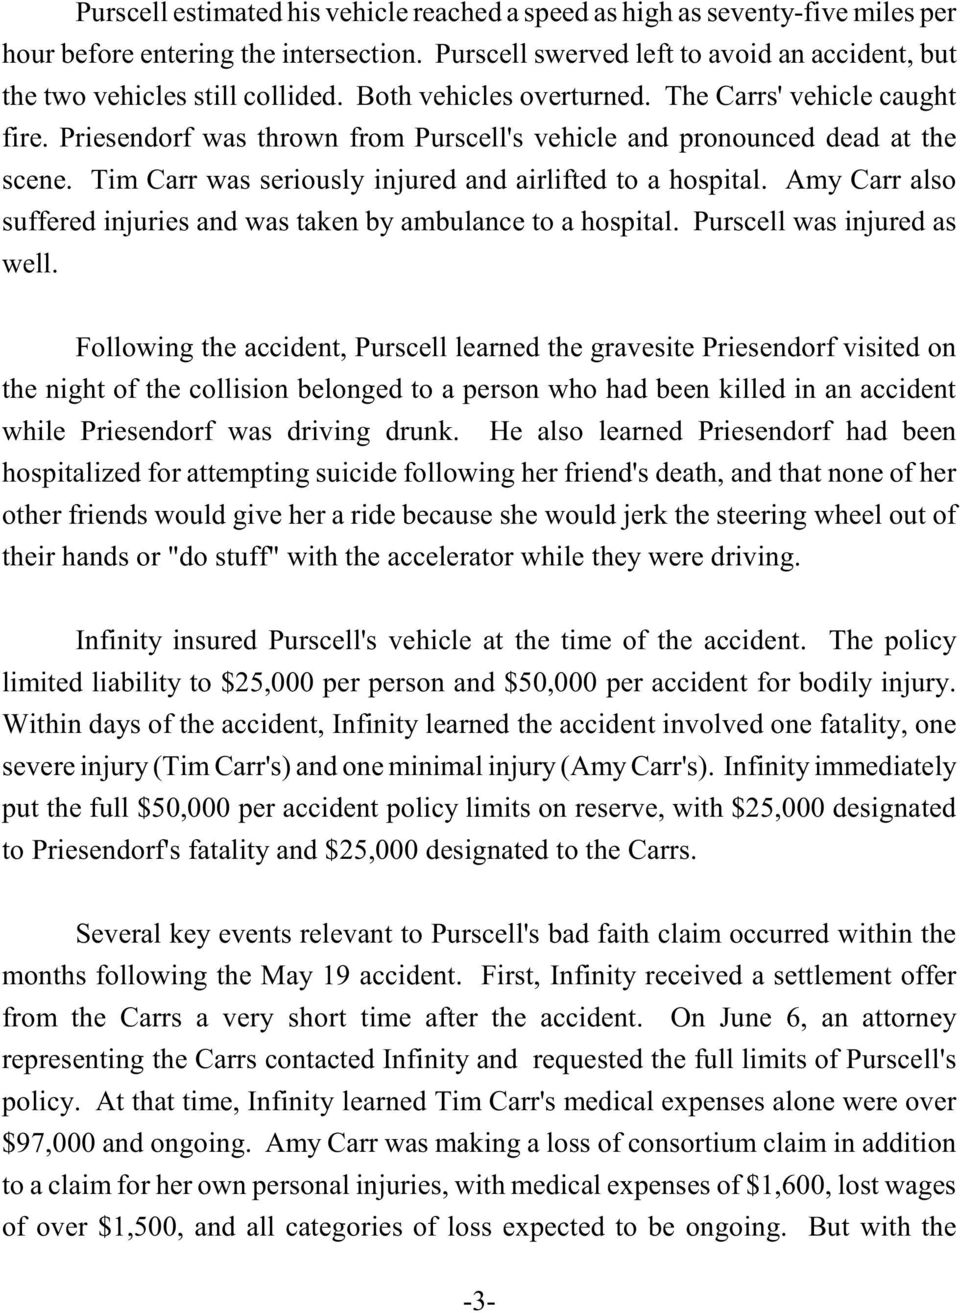 Amy Carr also suffered injuries and was taken by ambulance to a hospital. Purscell was injured as well.